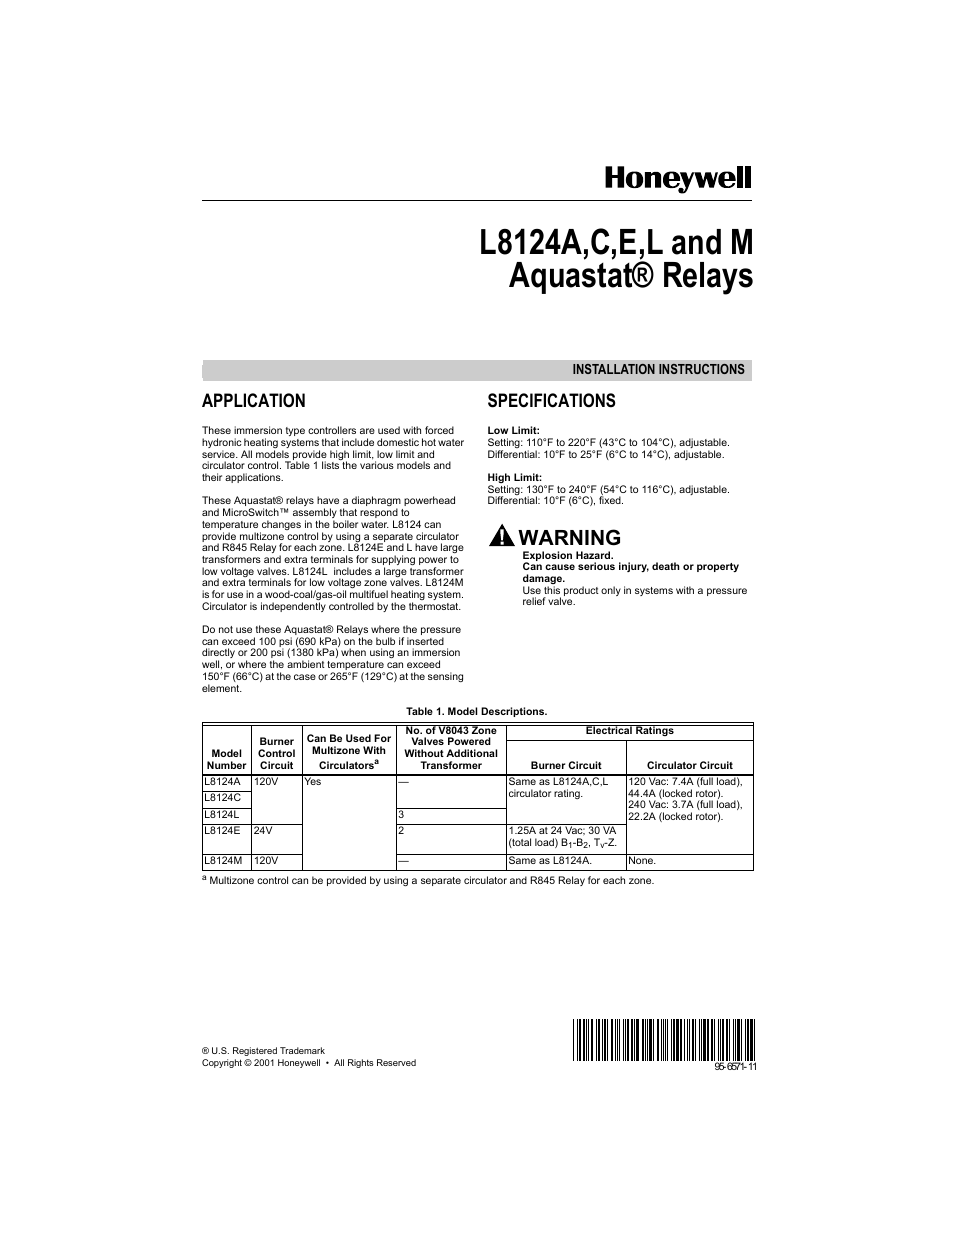 Honeywell R845 Gift Ideas R845a1030 Wiring Diagram Aquastat L8124e User Manual 8 Pages Also For L8124m L8124l L8124c